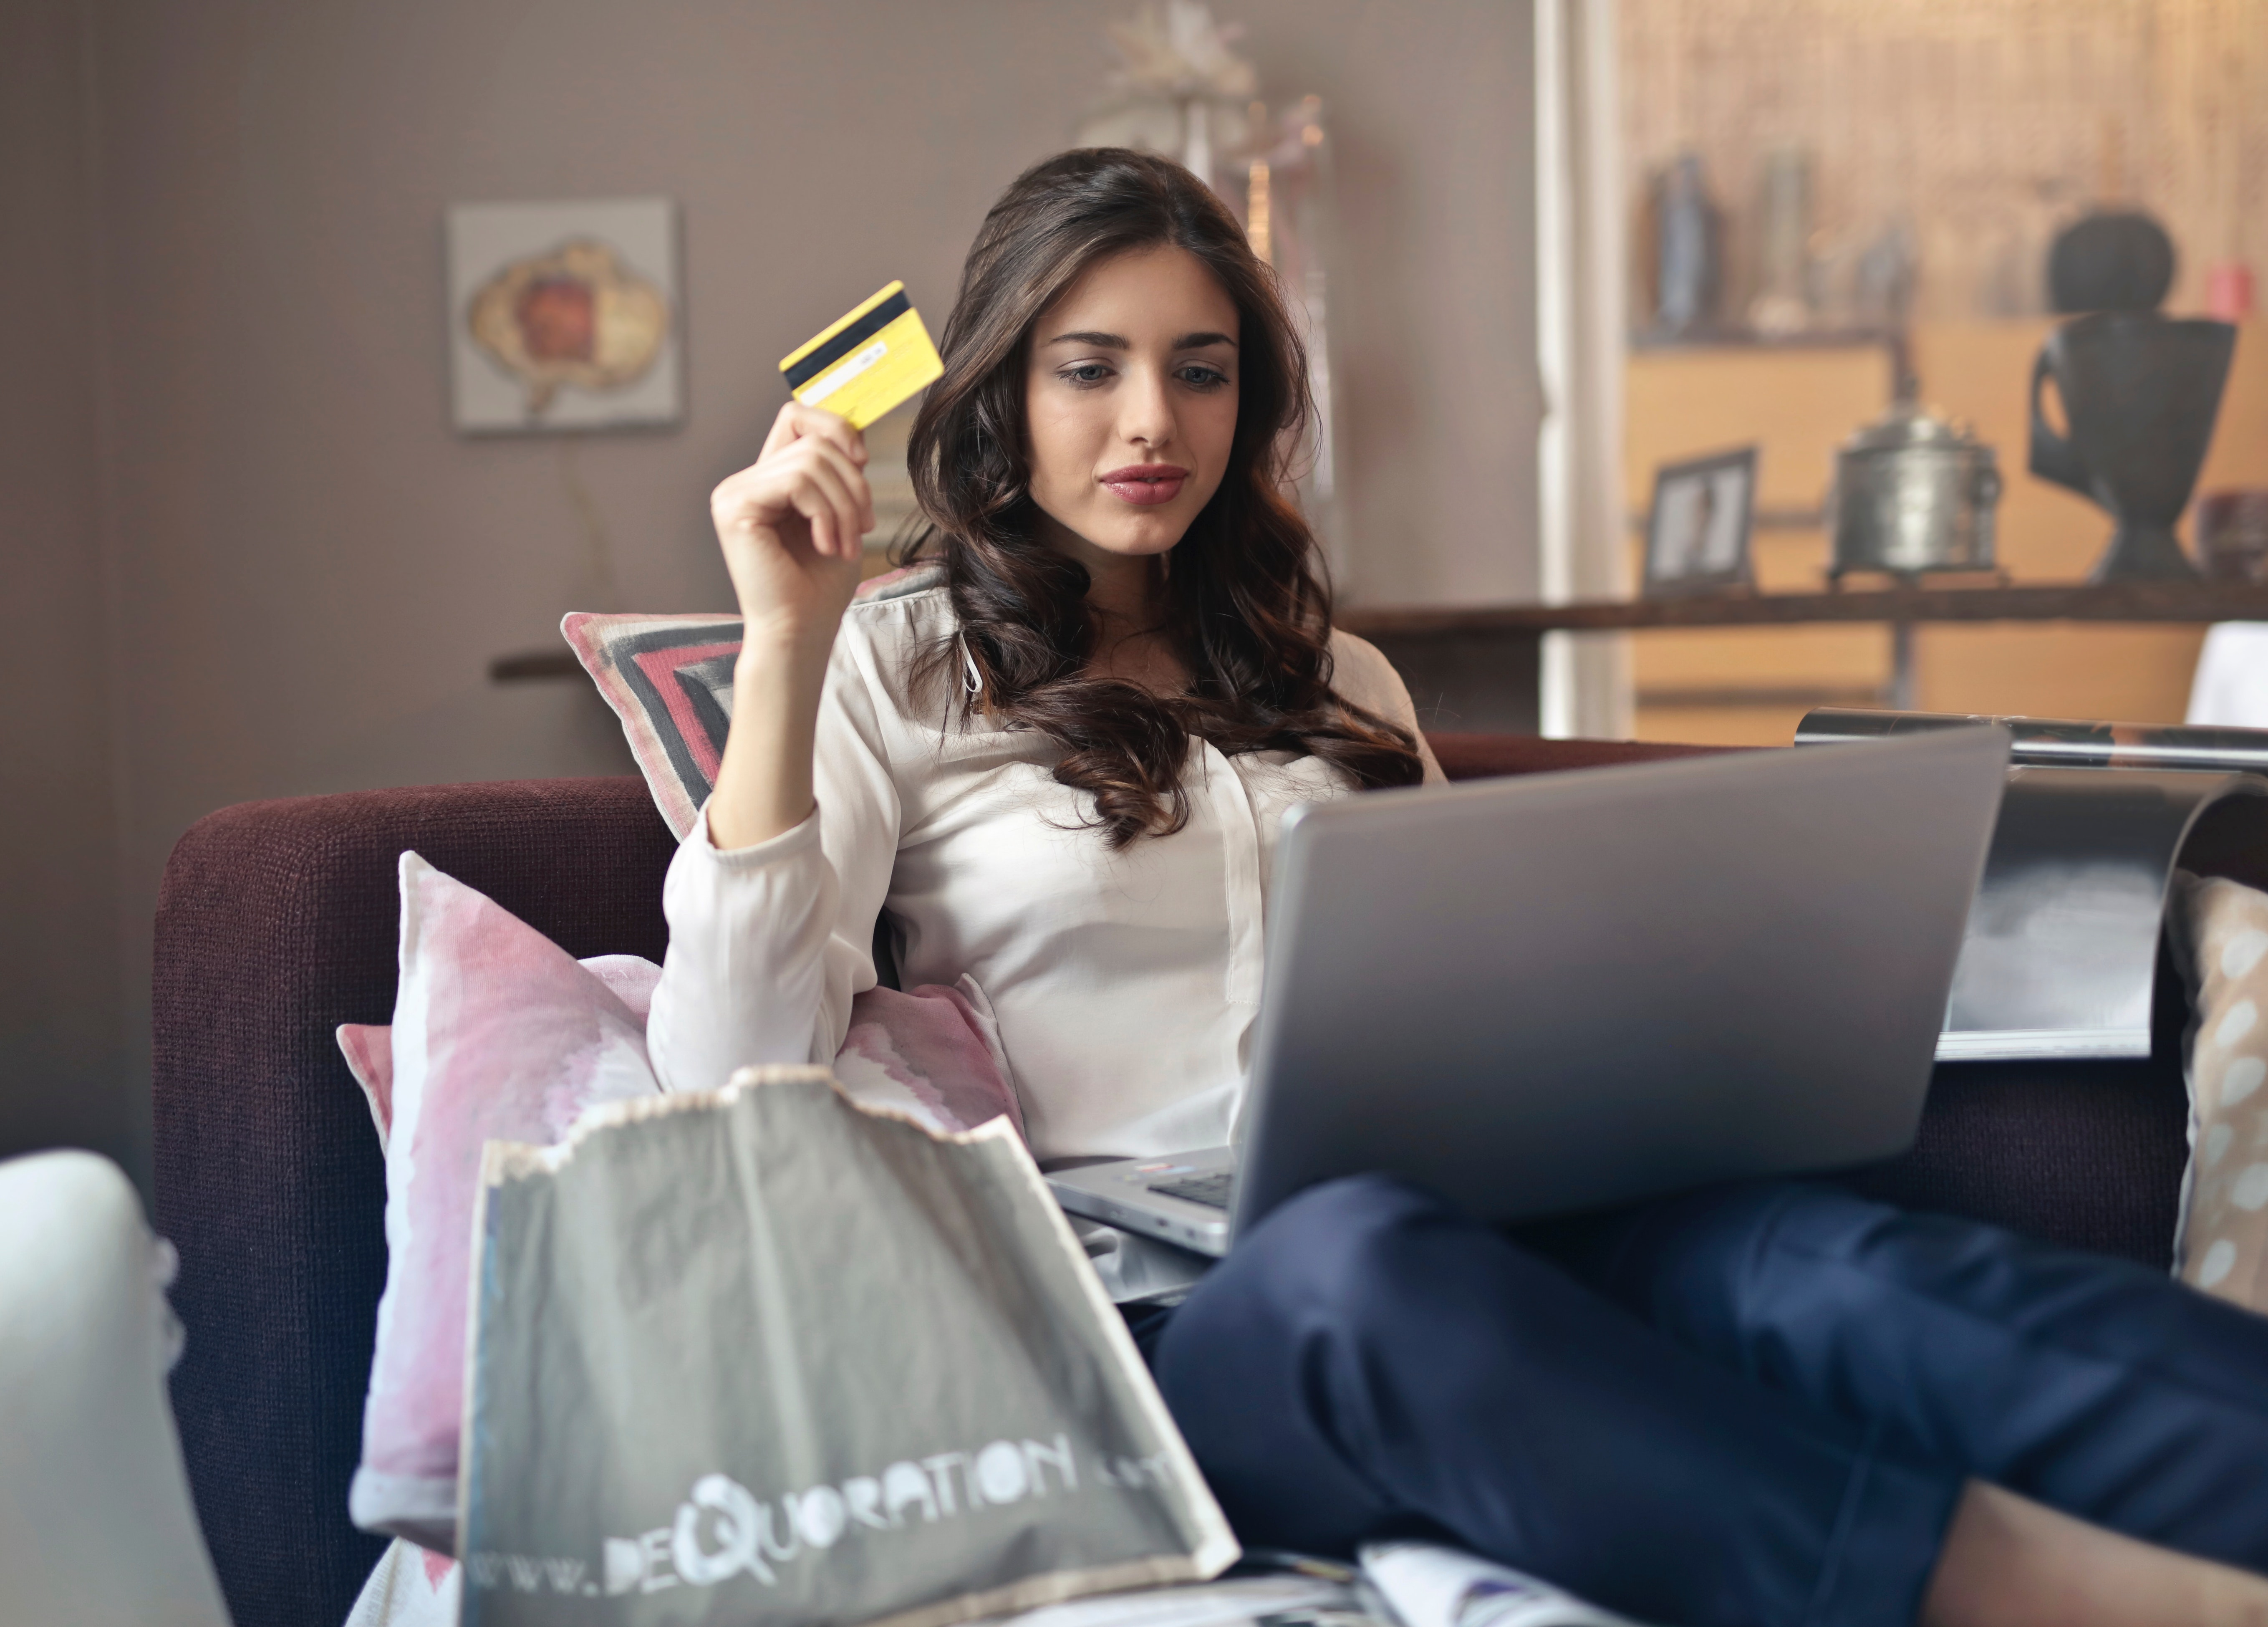 10 things to check before enjoying your shopping spree online